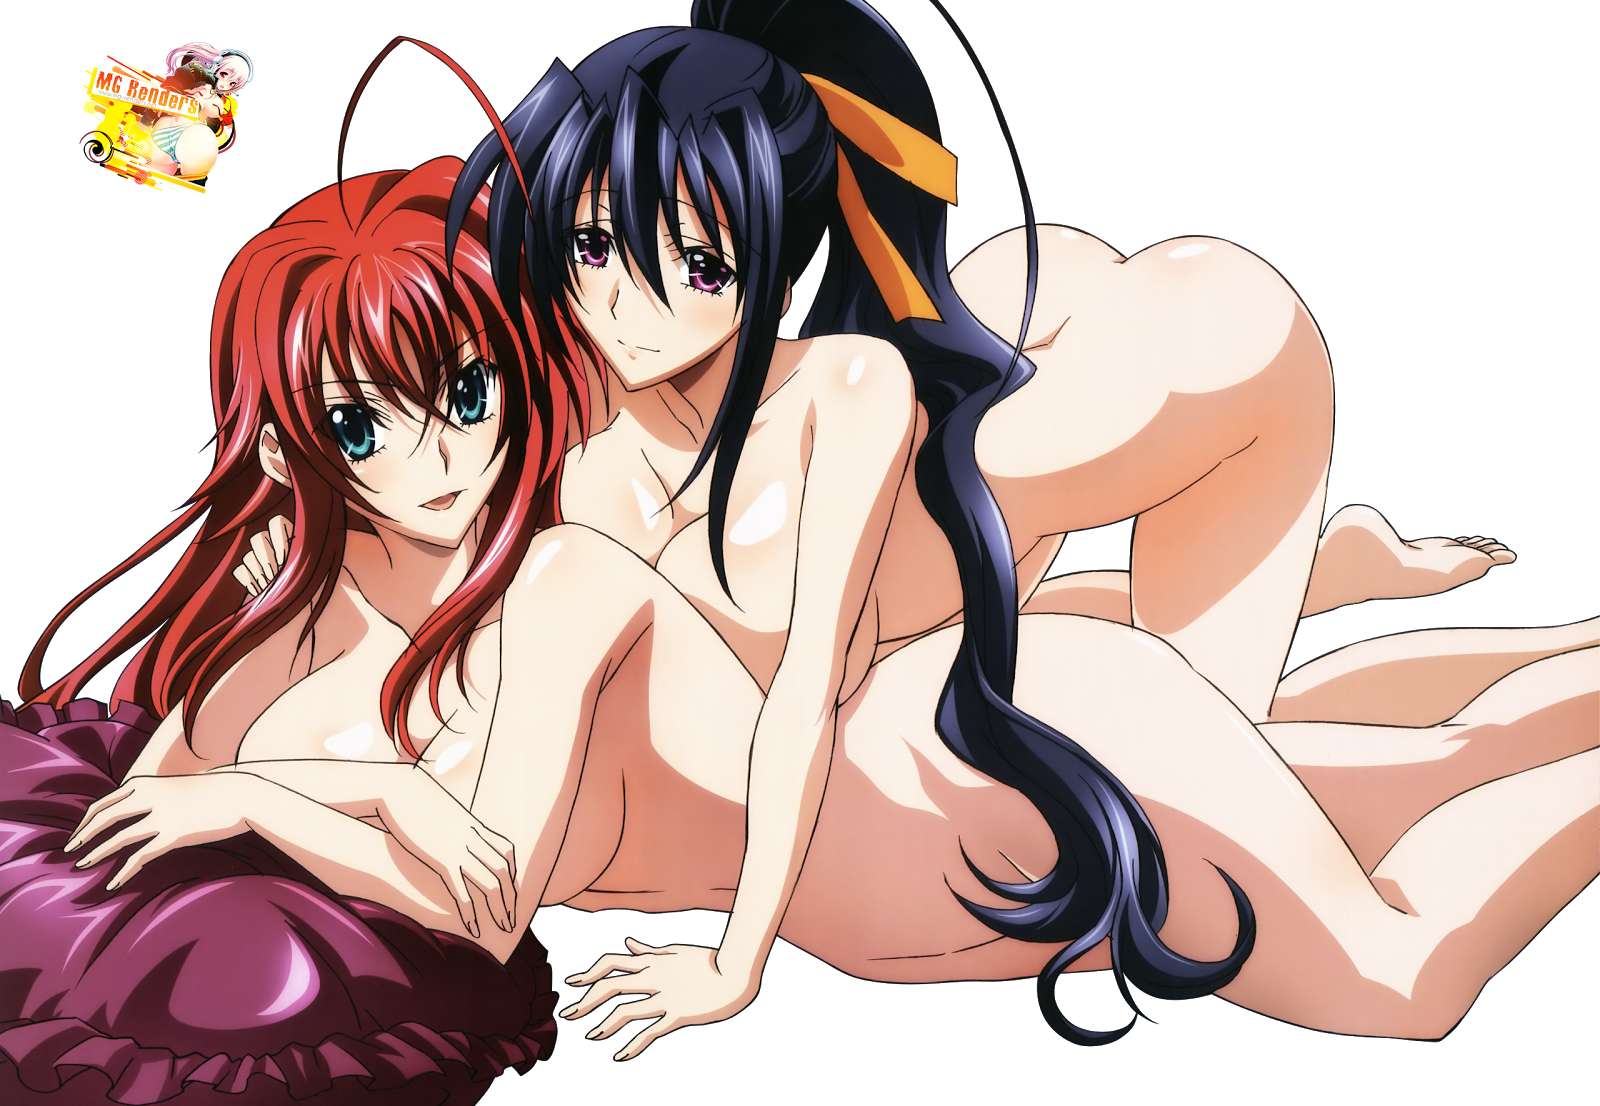 Tags: Anime, Render,  Breasts press,  High School DxD, ハイスクールD×D, Haisukūru D×D,  Himejima Akeno, 姫島朱乃,  Huge Breasts,  No bra,  No panties,  Rias Gremory, リアス・グレモリー,  Yuri, PNG, Image, Picture